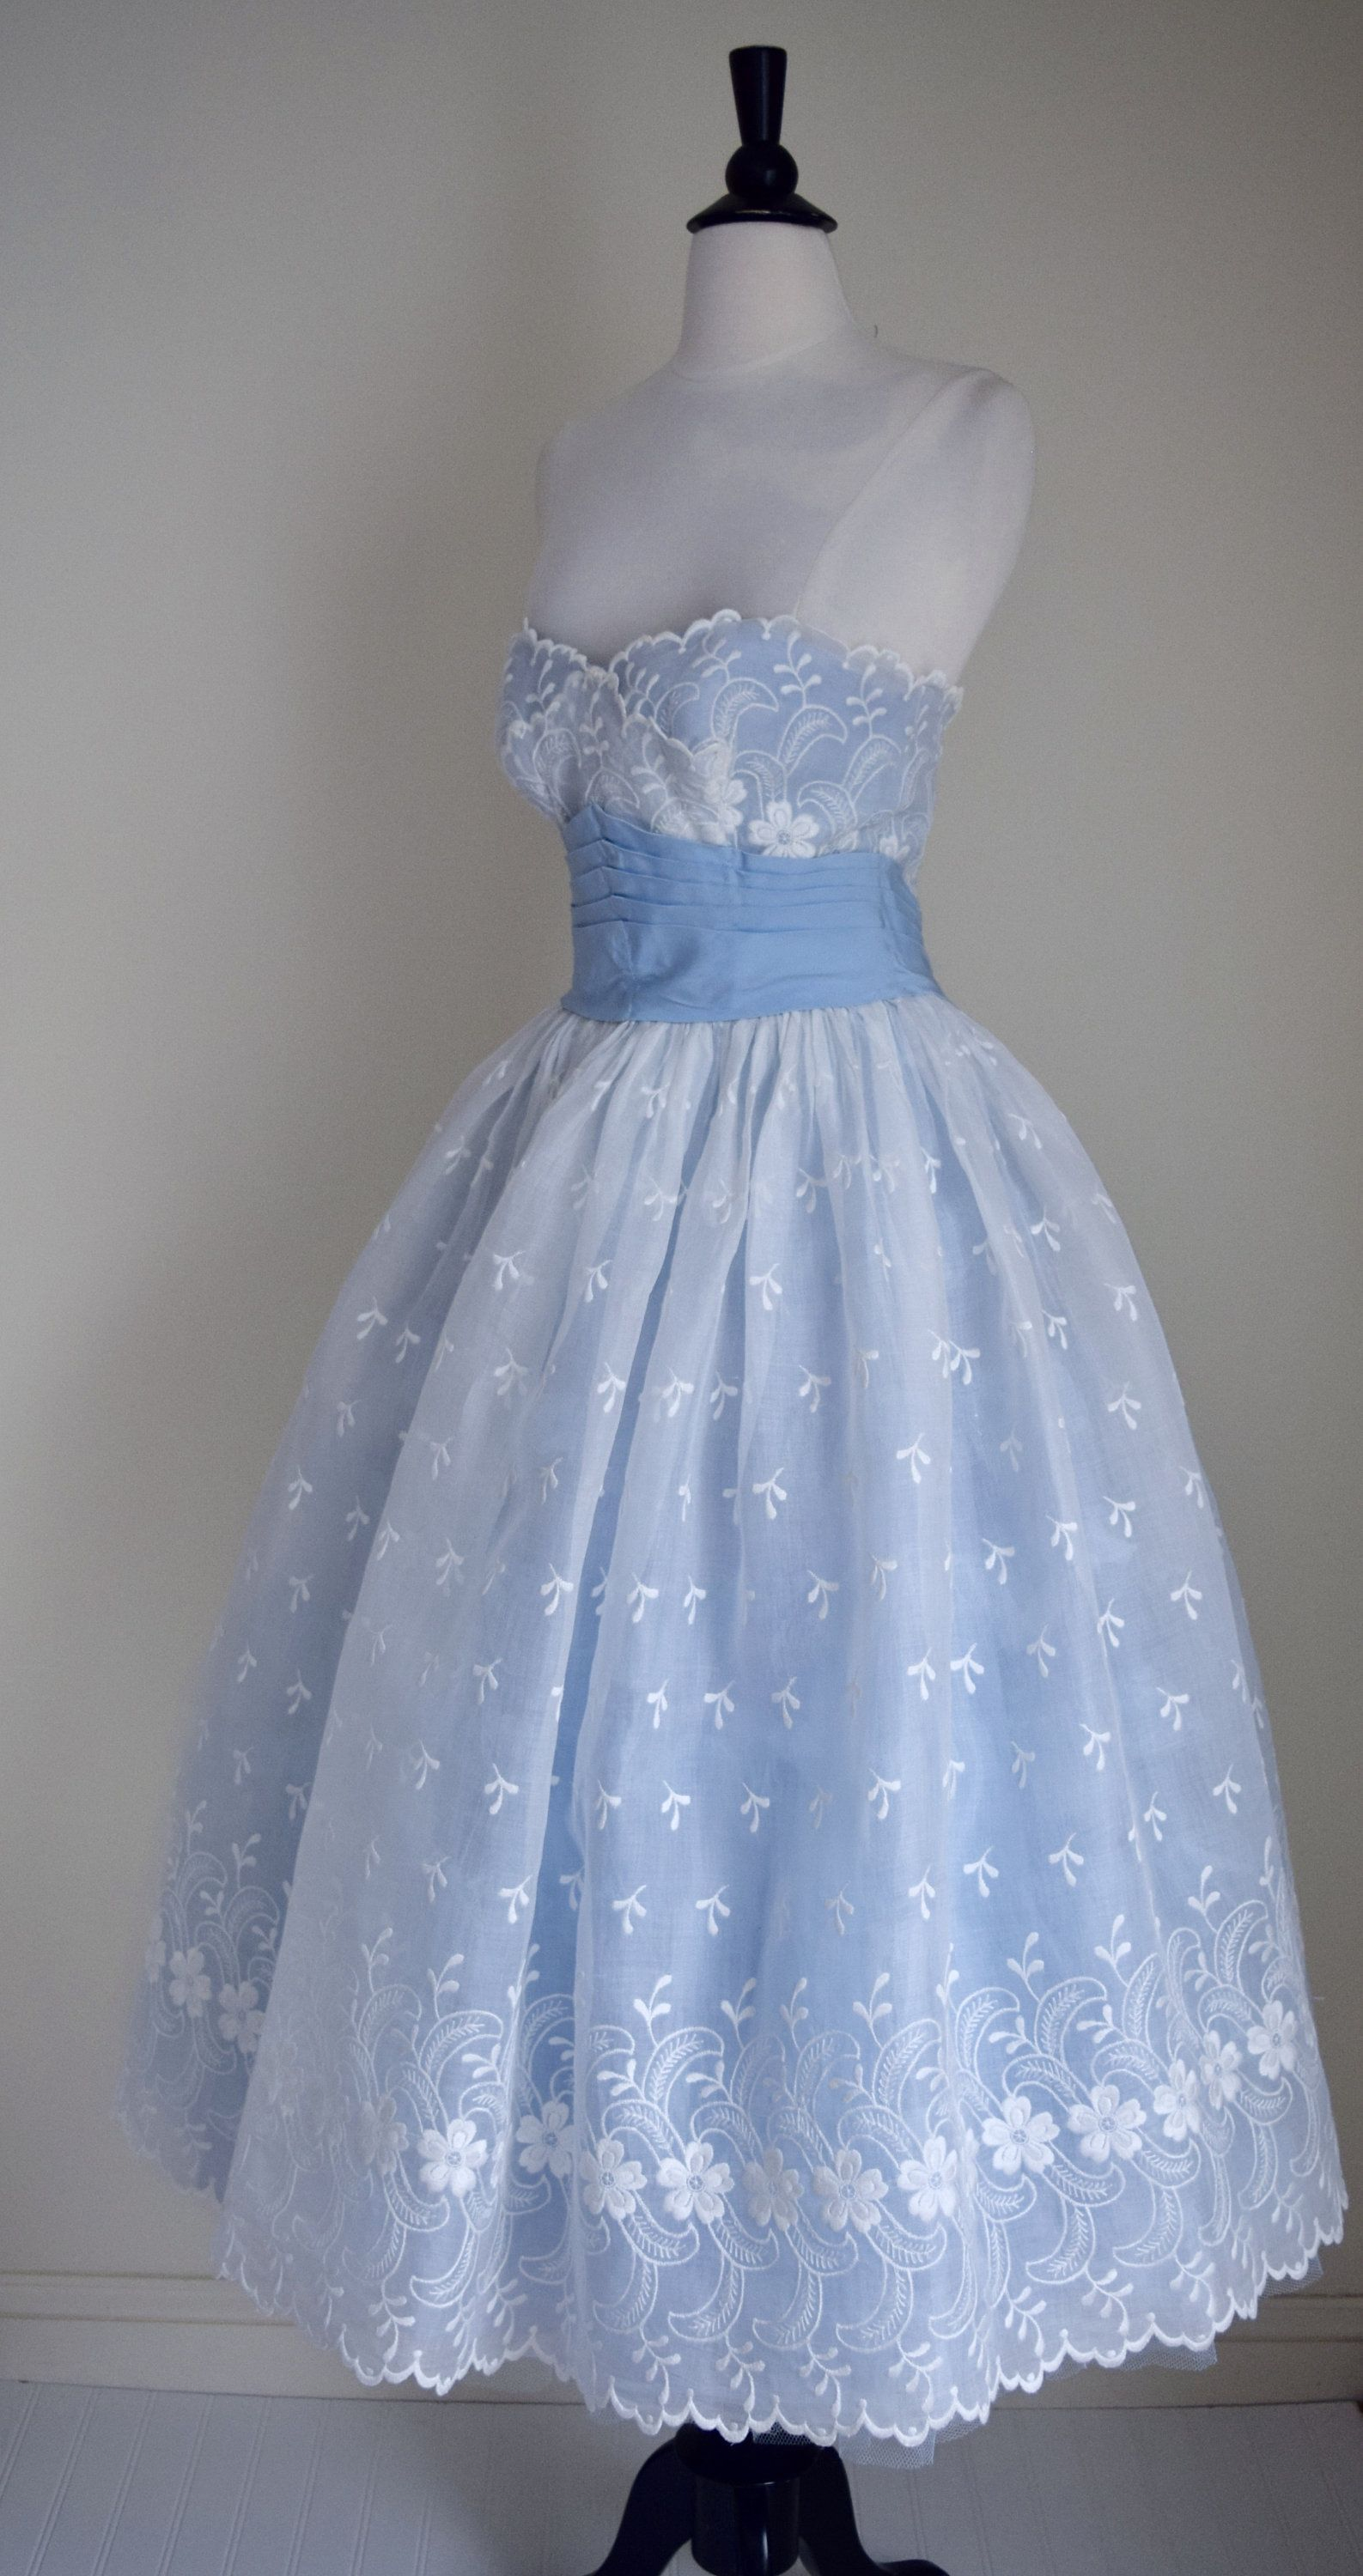 Vintage 1950s Ballerina Gown   50s Embroidered Party Dress   1950s ...